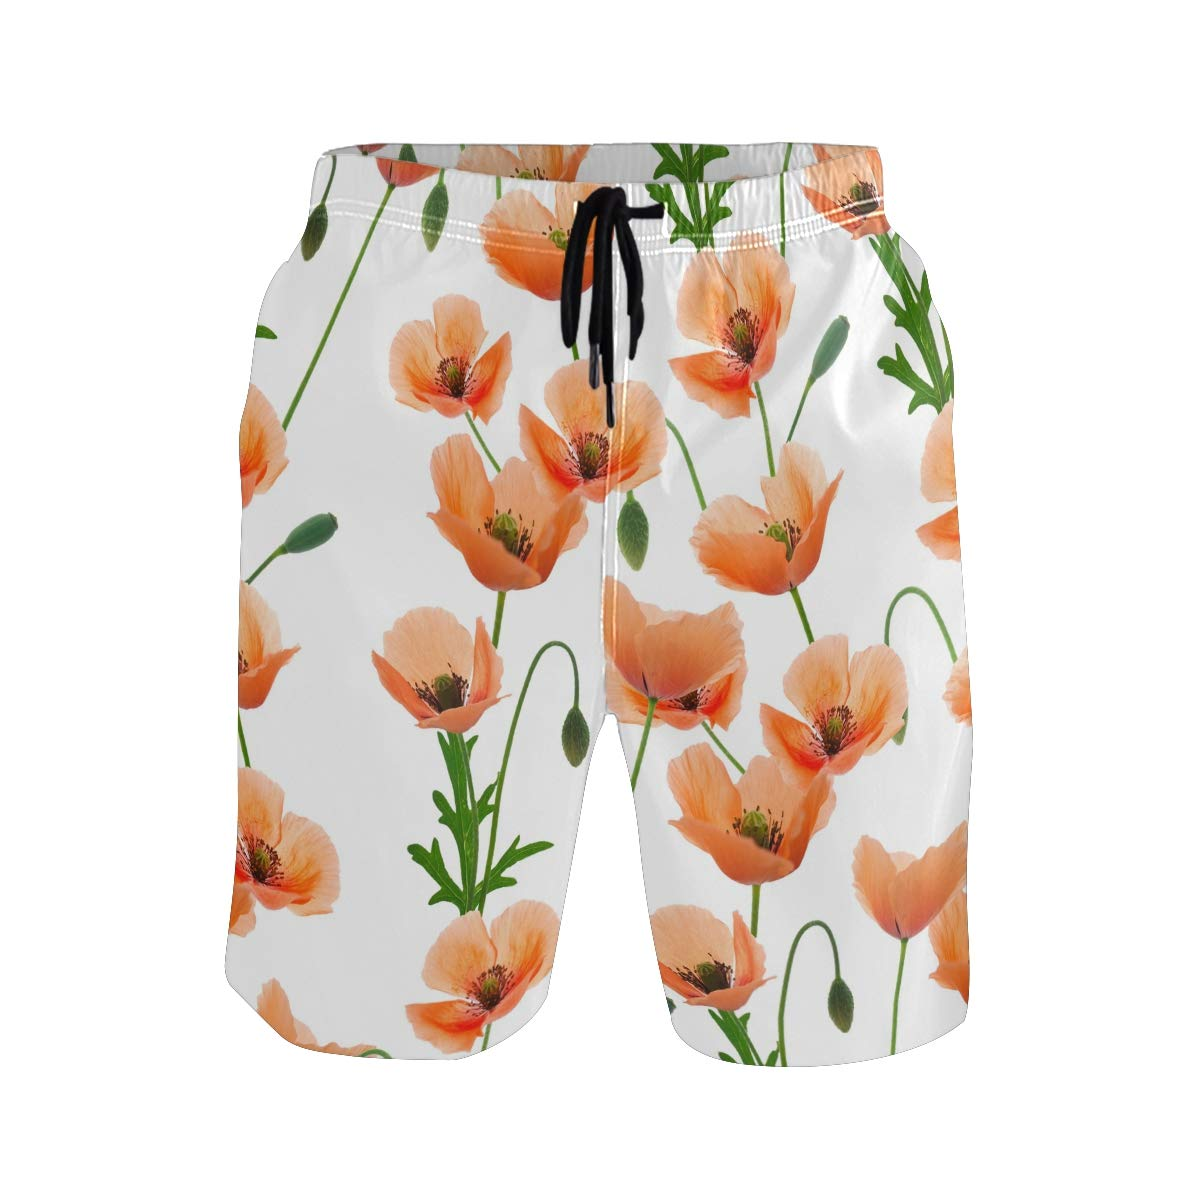 JERECY Mens Swim Trunks Poppy Flower Pattern Quick Dry Board Shorts with Drawstring and Pockets